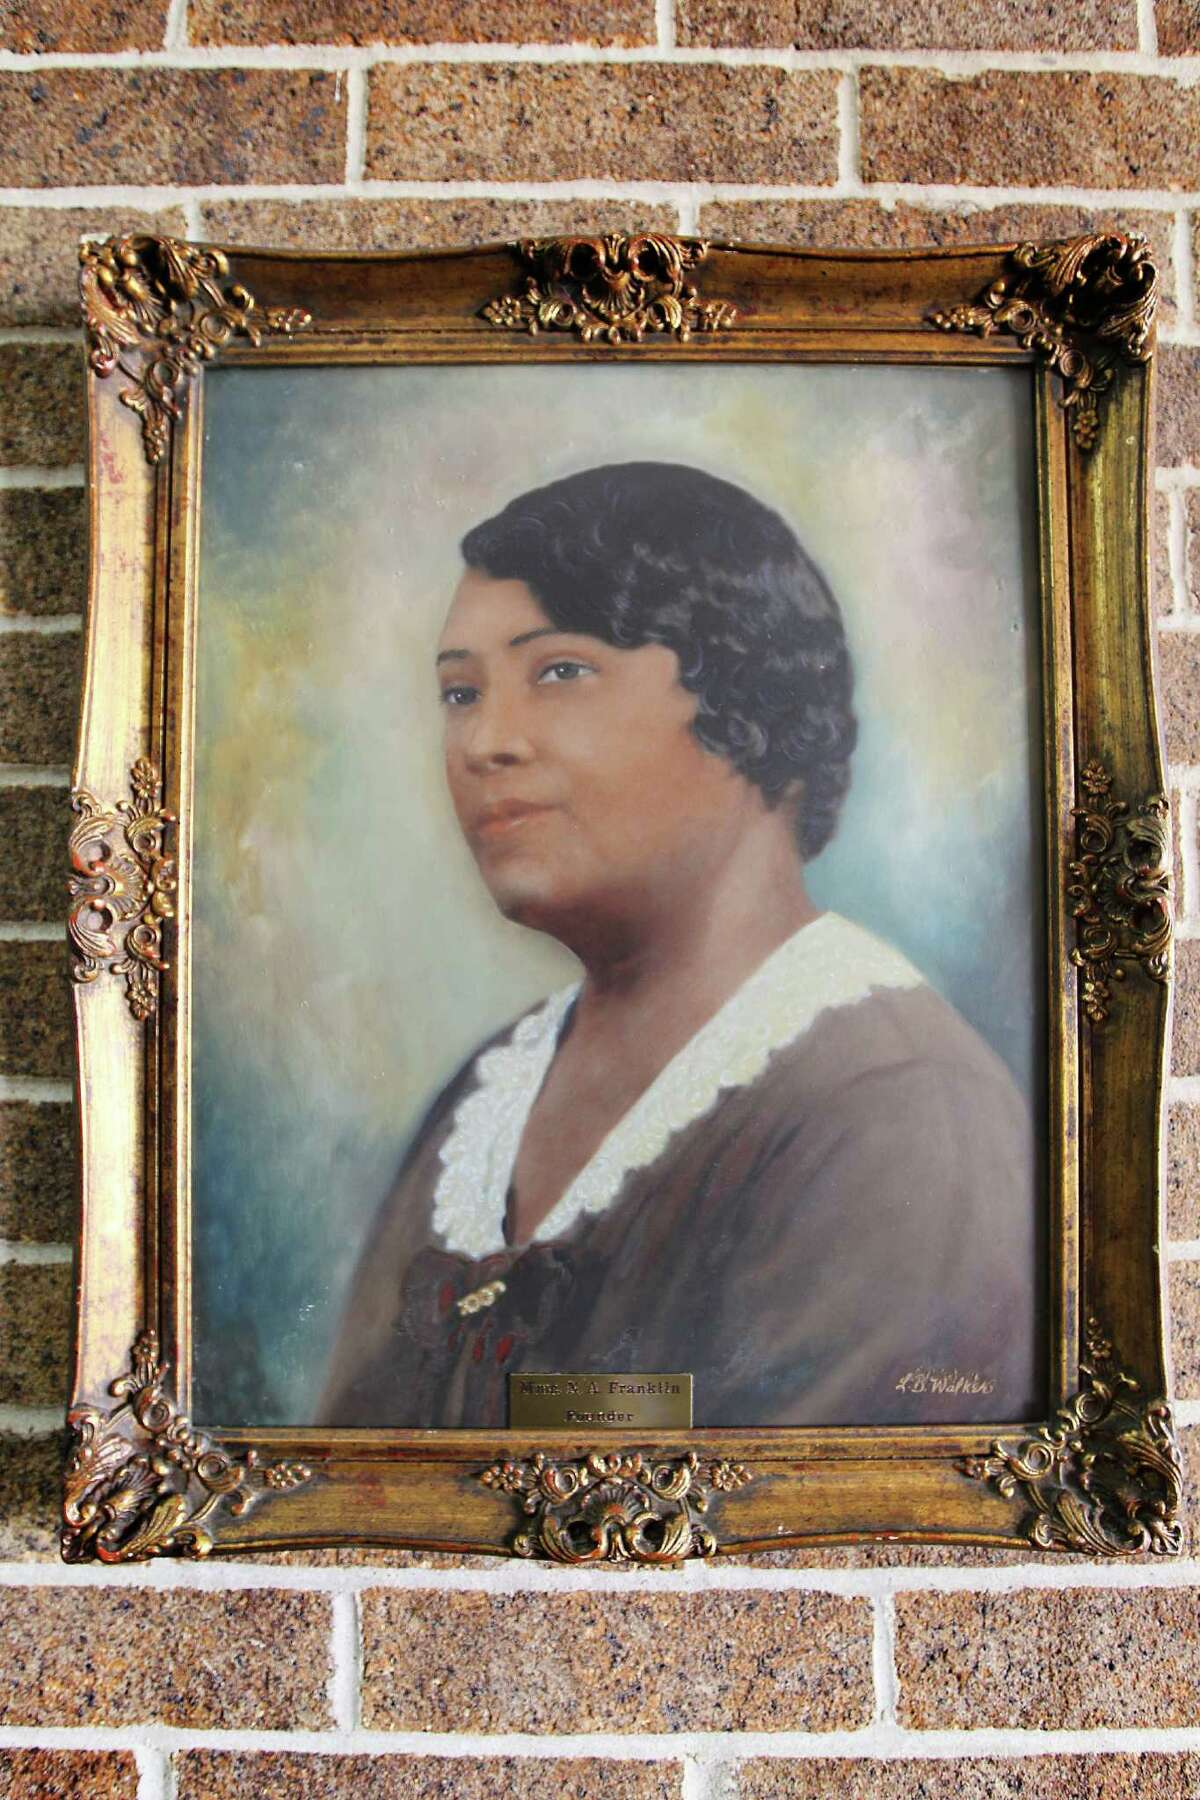 Madame N.A. Franklin, who founded the Franklin Beauty School in 1915.